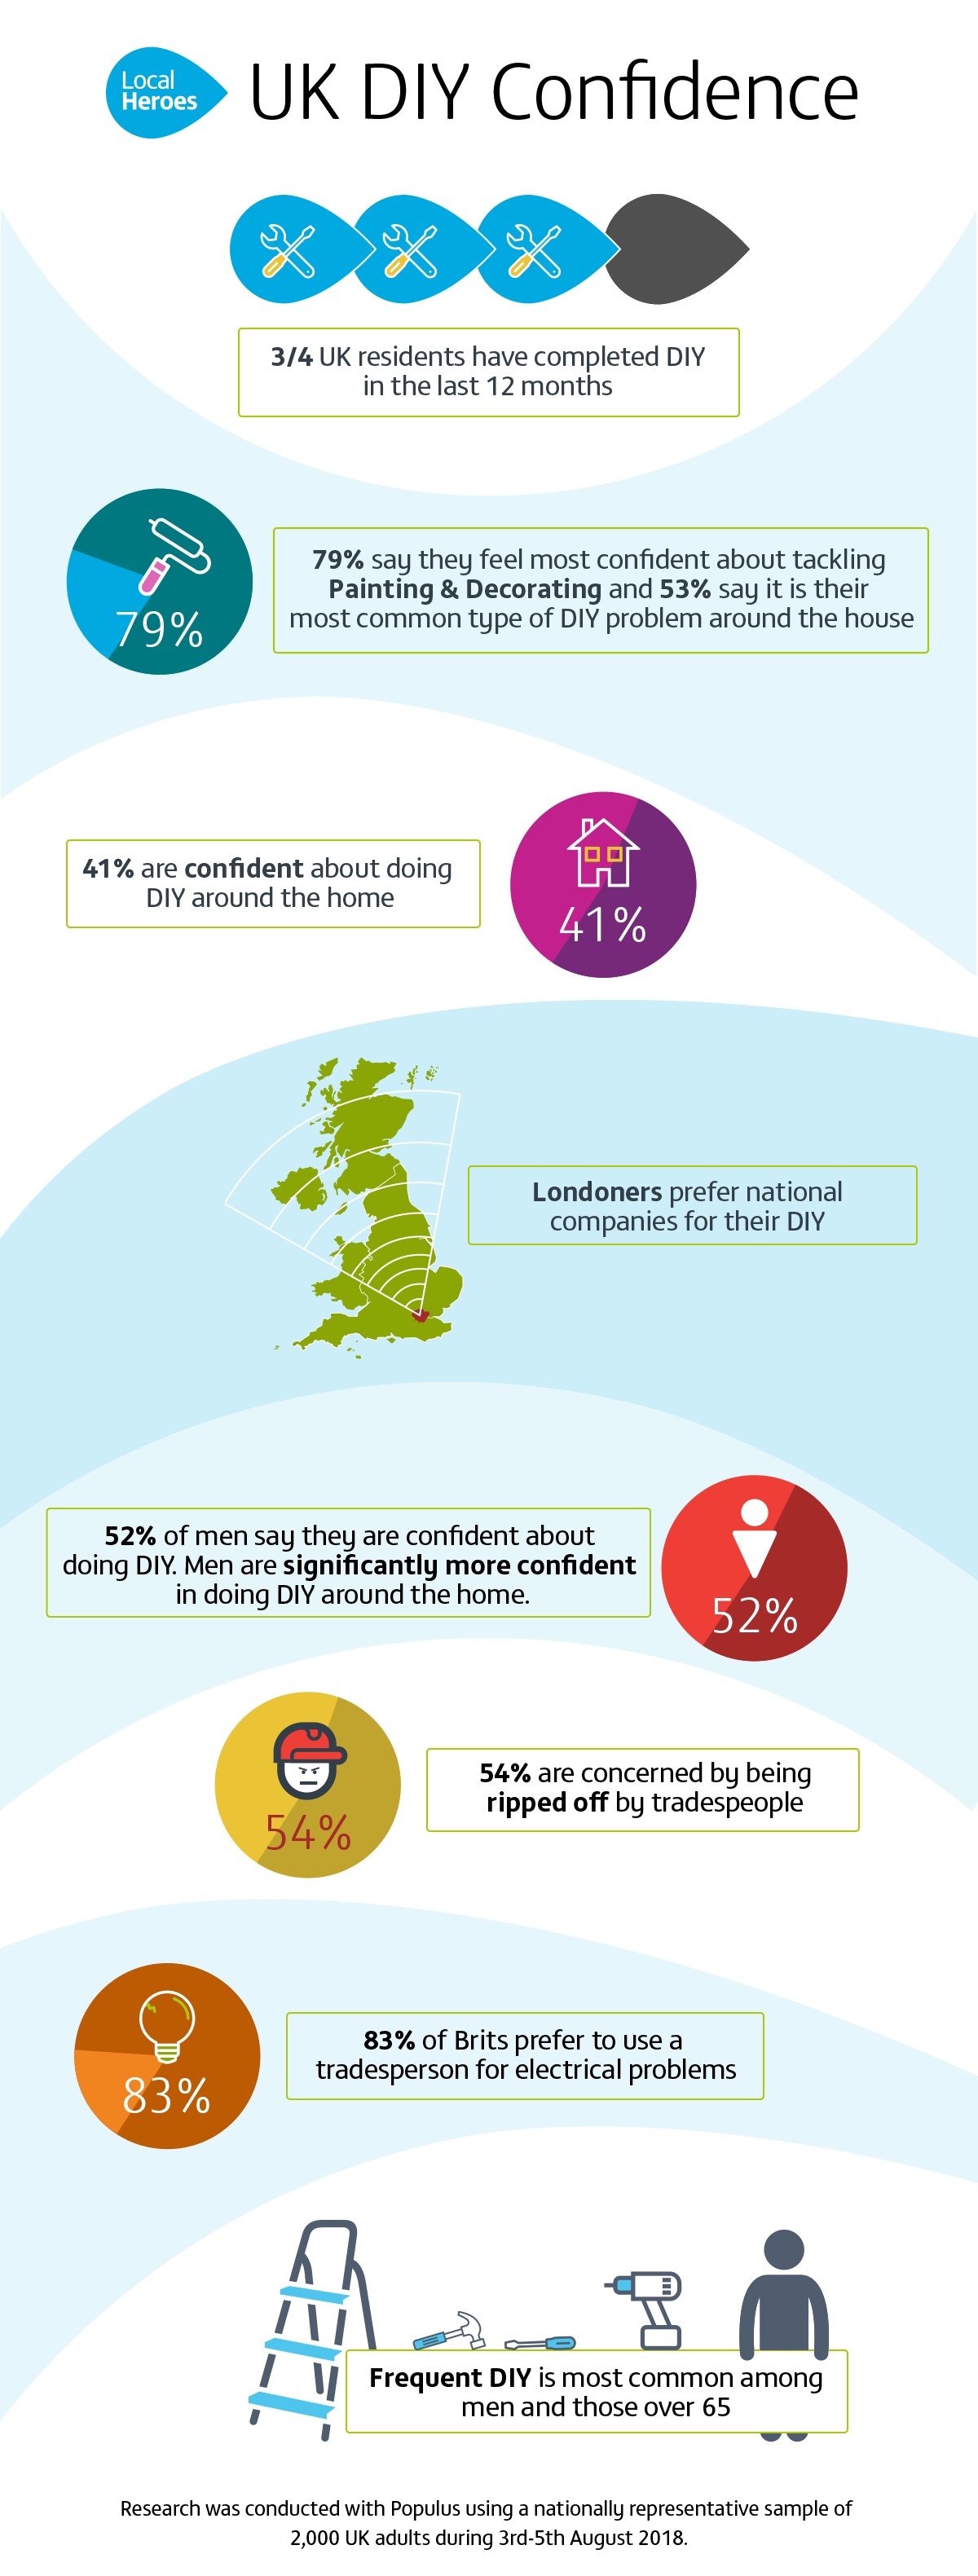 An infographic showing the confidence British people have when tackling DIY